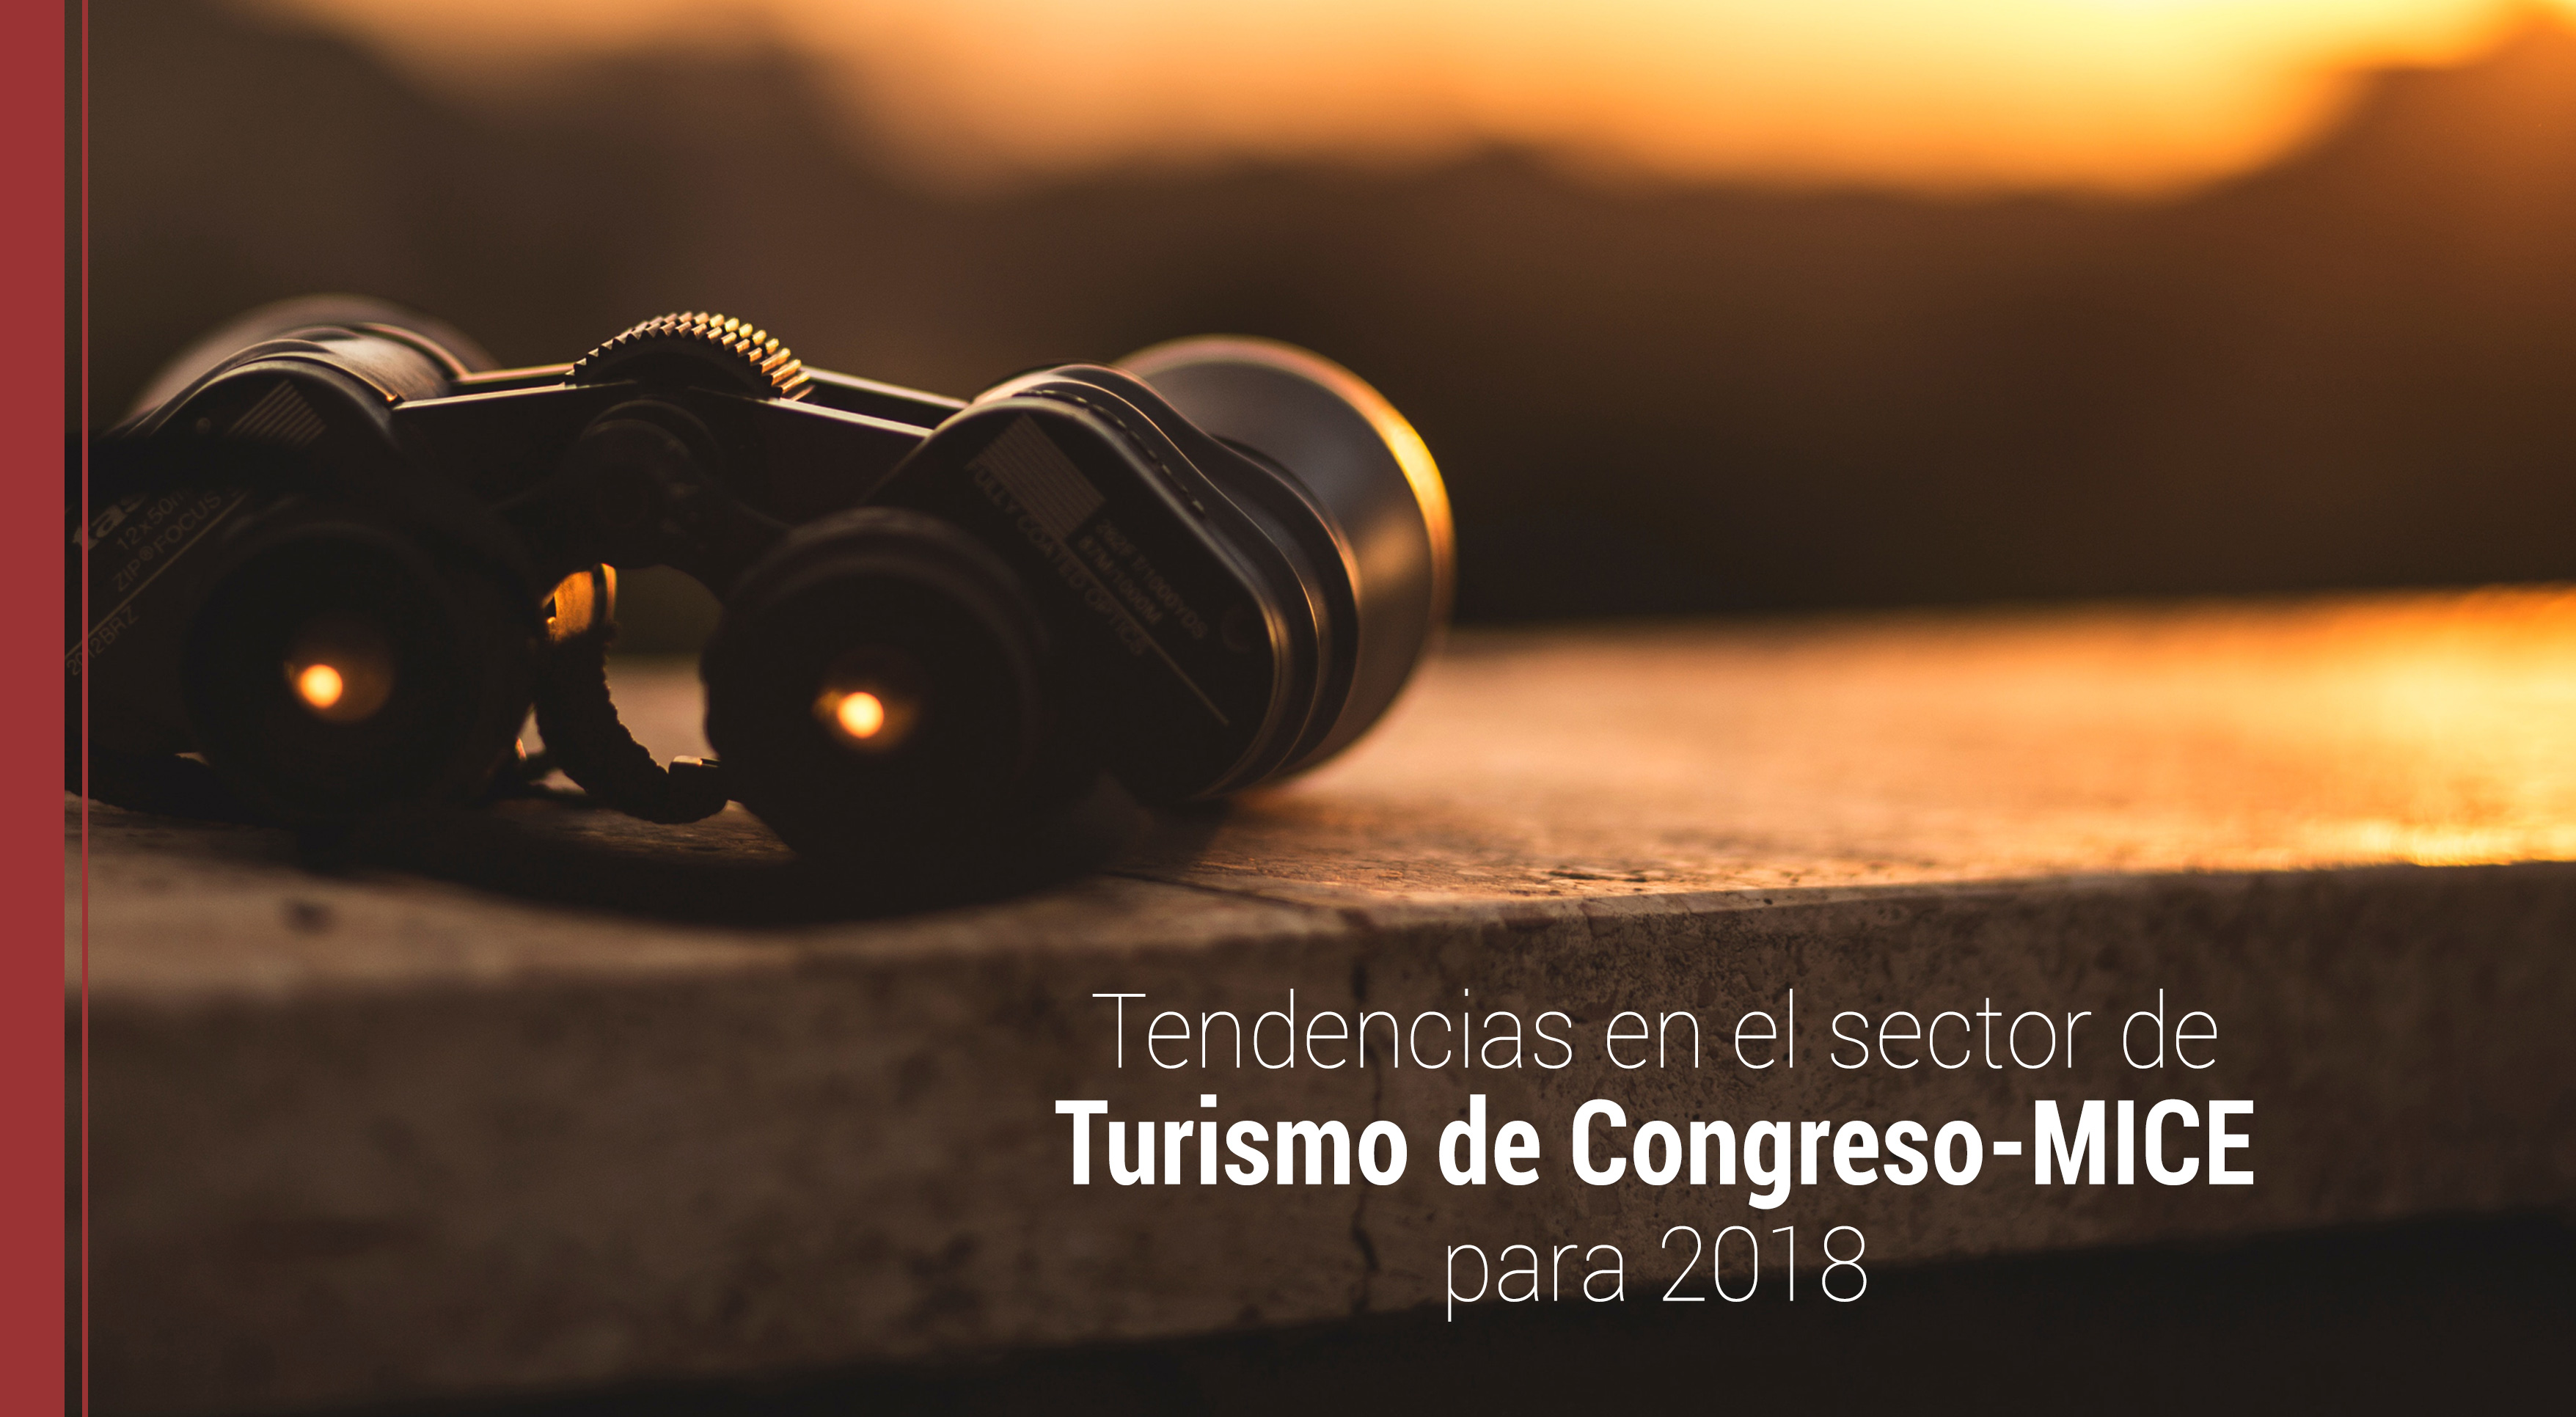 tendencias-sector-turismo-mice-2018 Tendencias en el sector de Turismo de Congreso-MICE para 2018